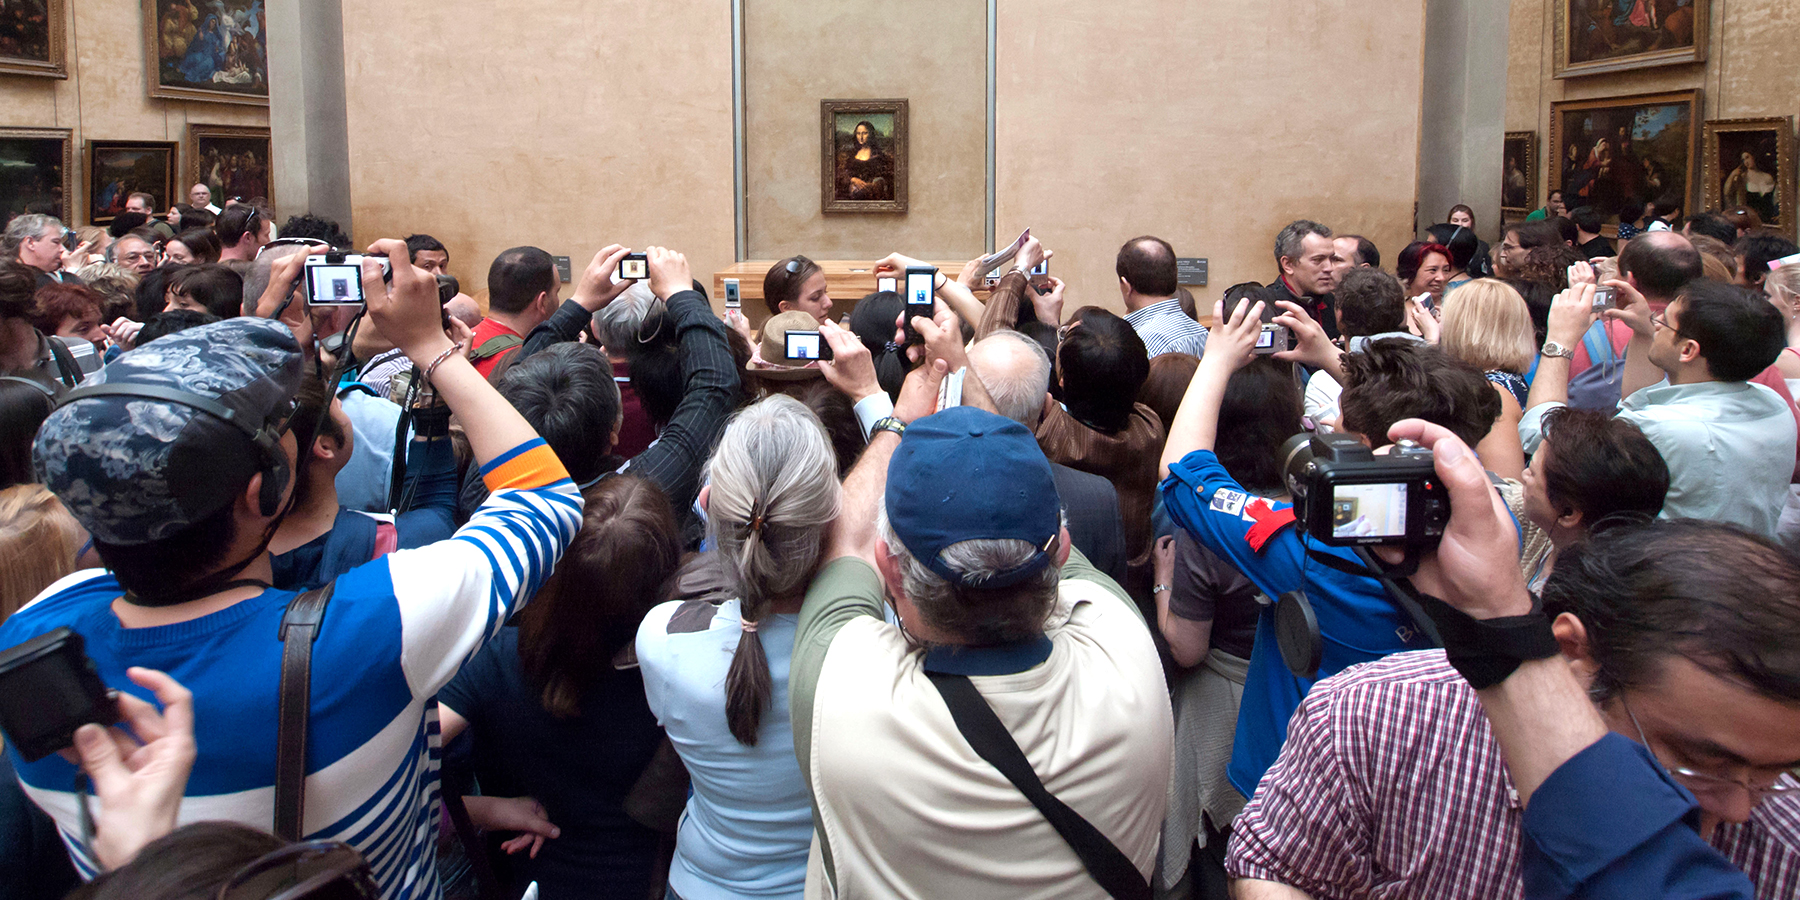 This Is How to Look at Art (Spoiler: Put Away Your iPhone)